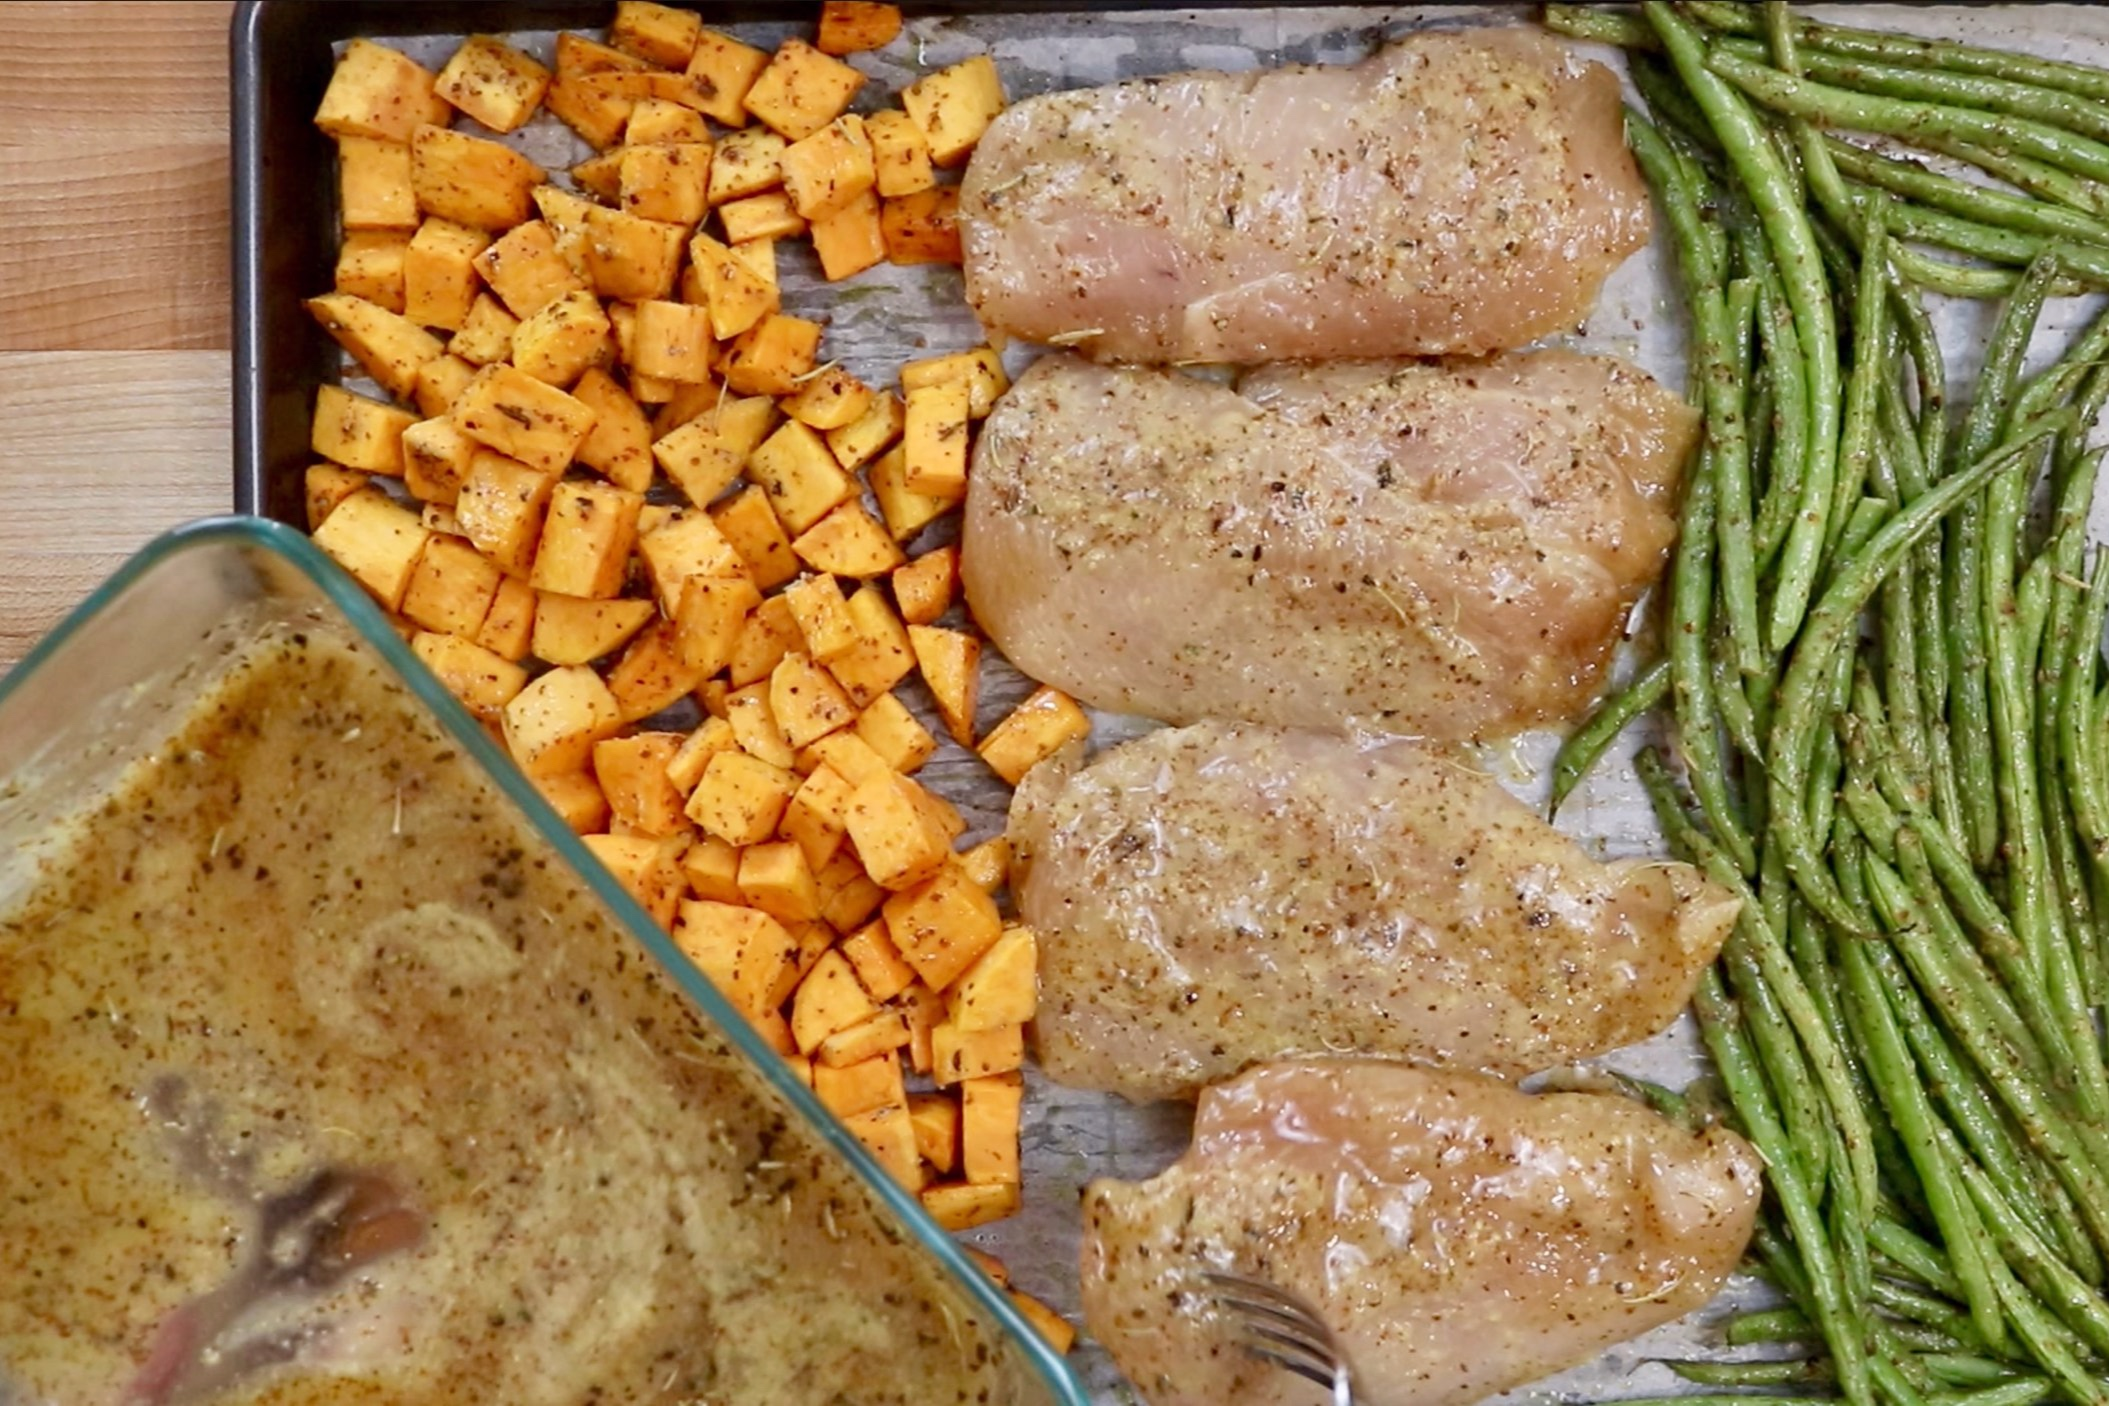 7. Remove baking sheet from oven, move the veggies to the side and add the chicken spaced evenly apart. Brush remaining marinade over the chicken. Cook for another 12-15 minutes or until chicken is cooked through and veggies are tender. -